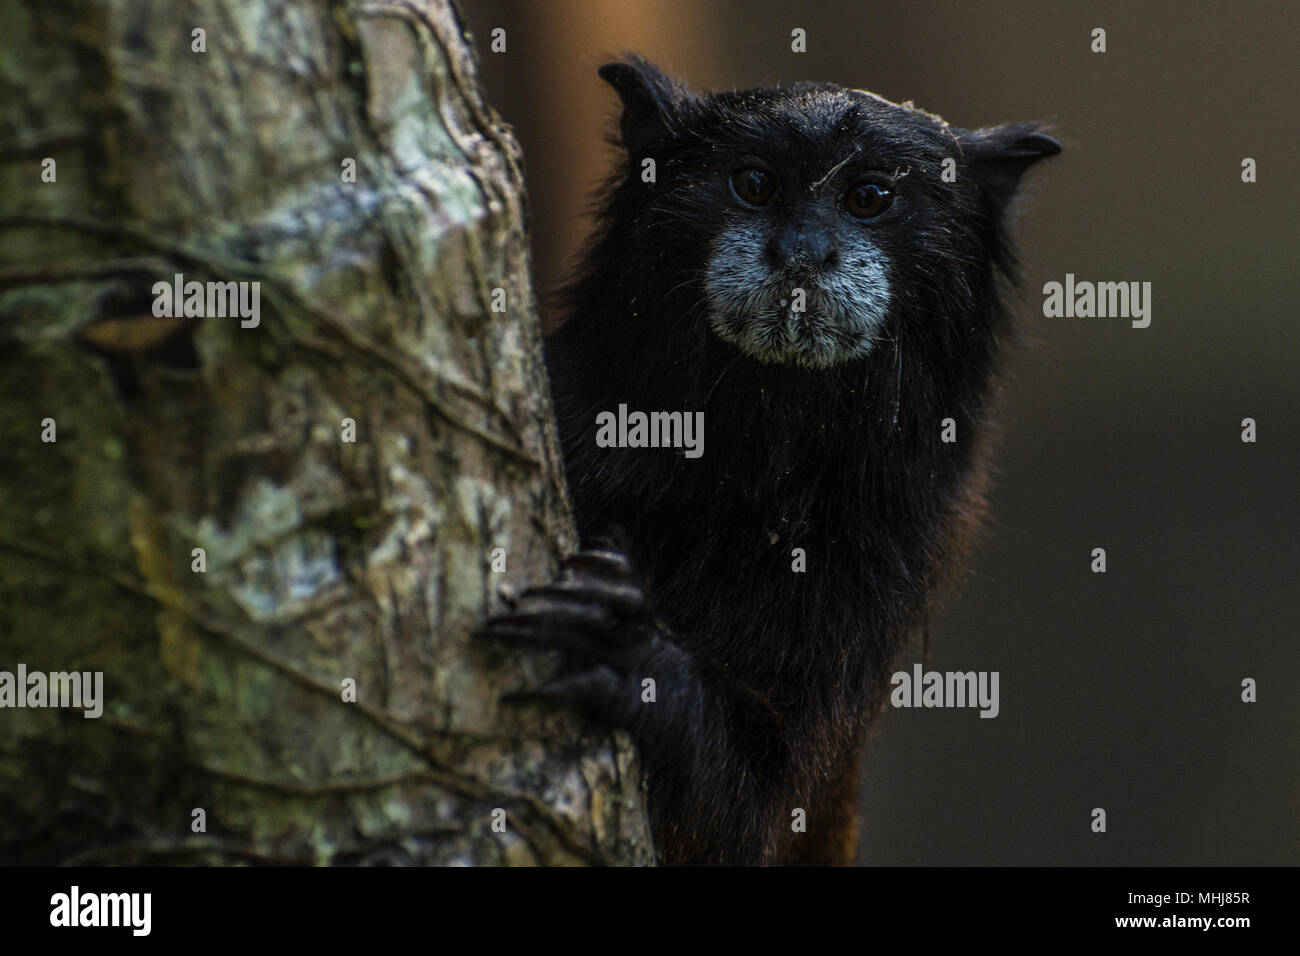 A urban saddle backed tamarin monkey from the edge of Tarapoto, in the San Martin department of Peru. - Stock Image